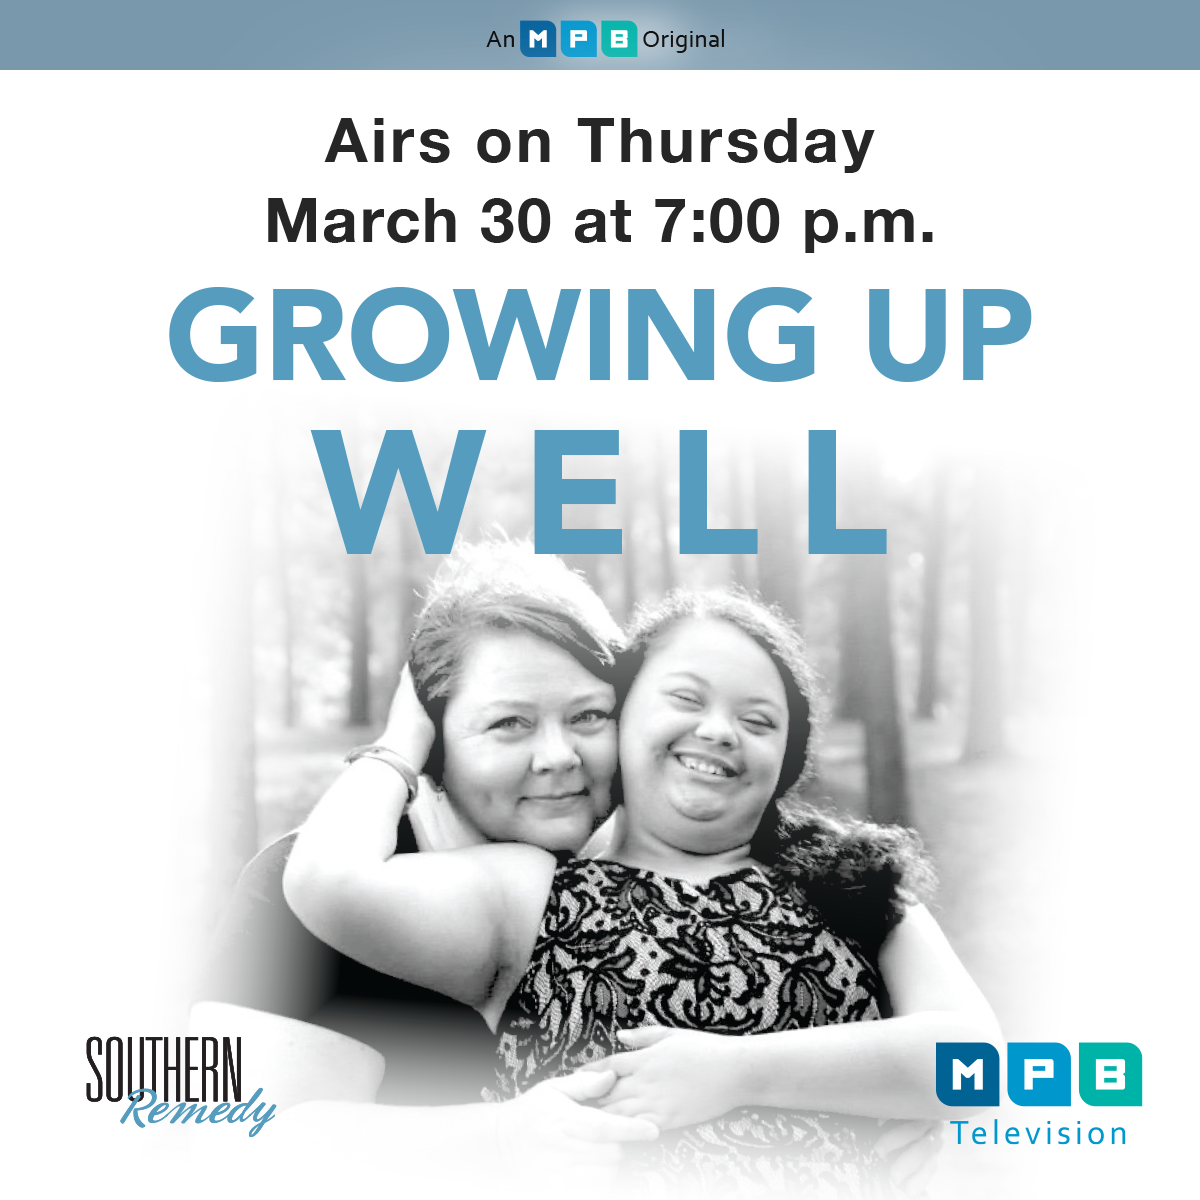 Watch Southern Remedy: Growing Up Well March 30 at 7PM on MPB TV.